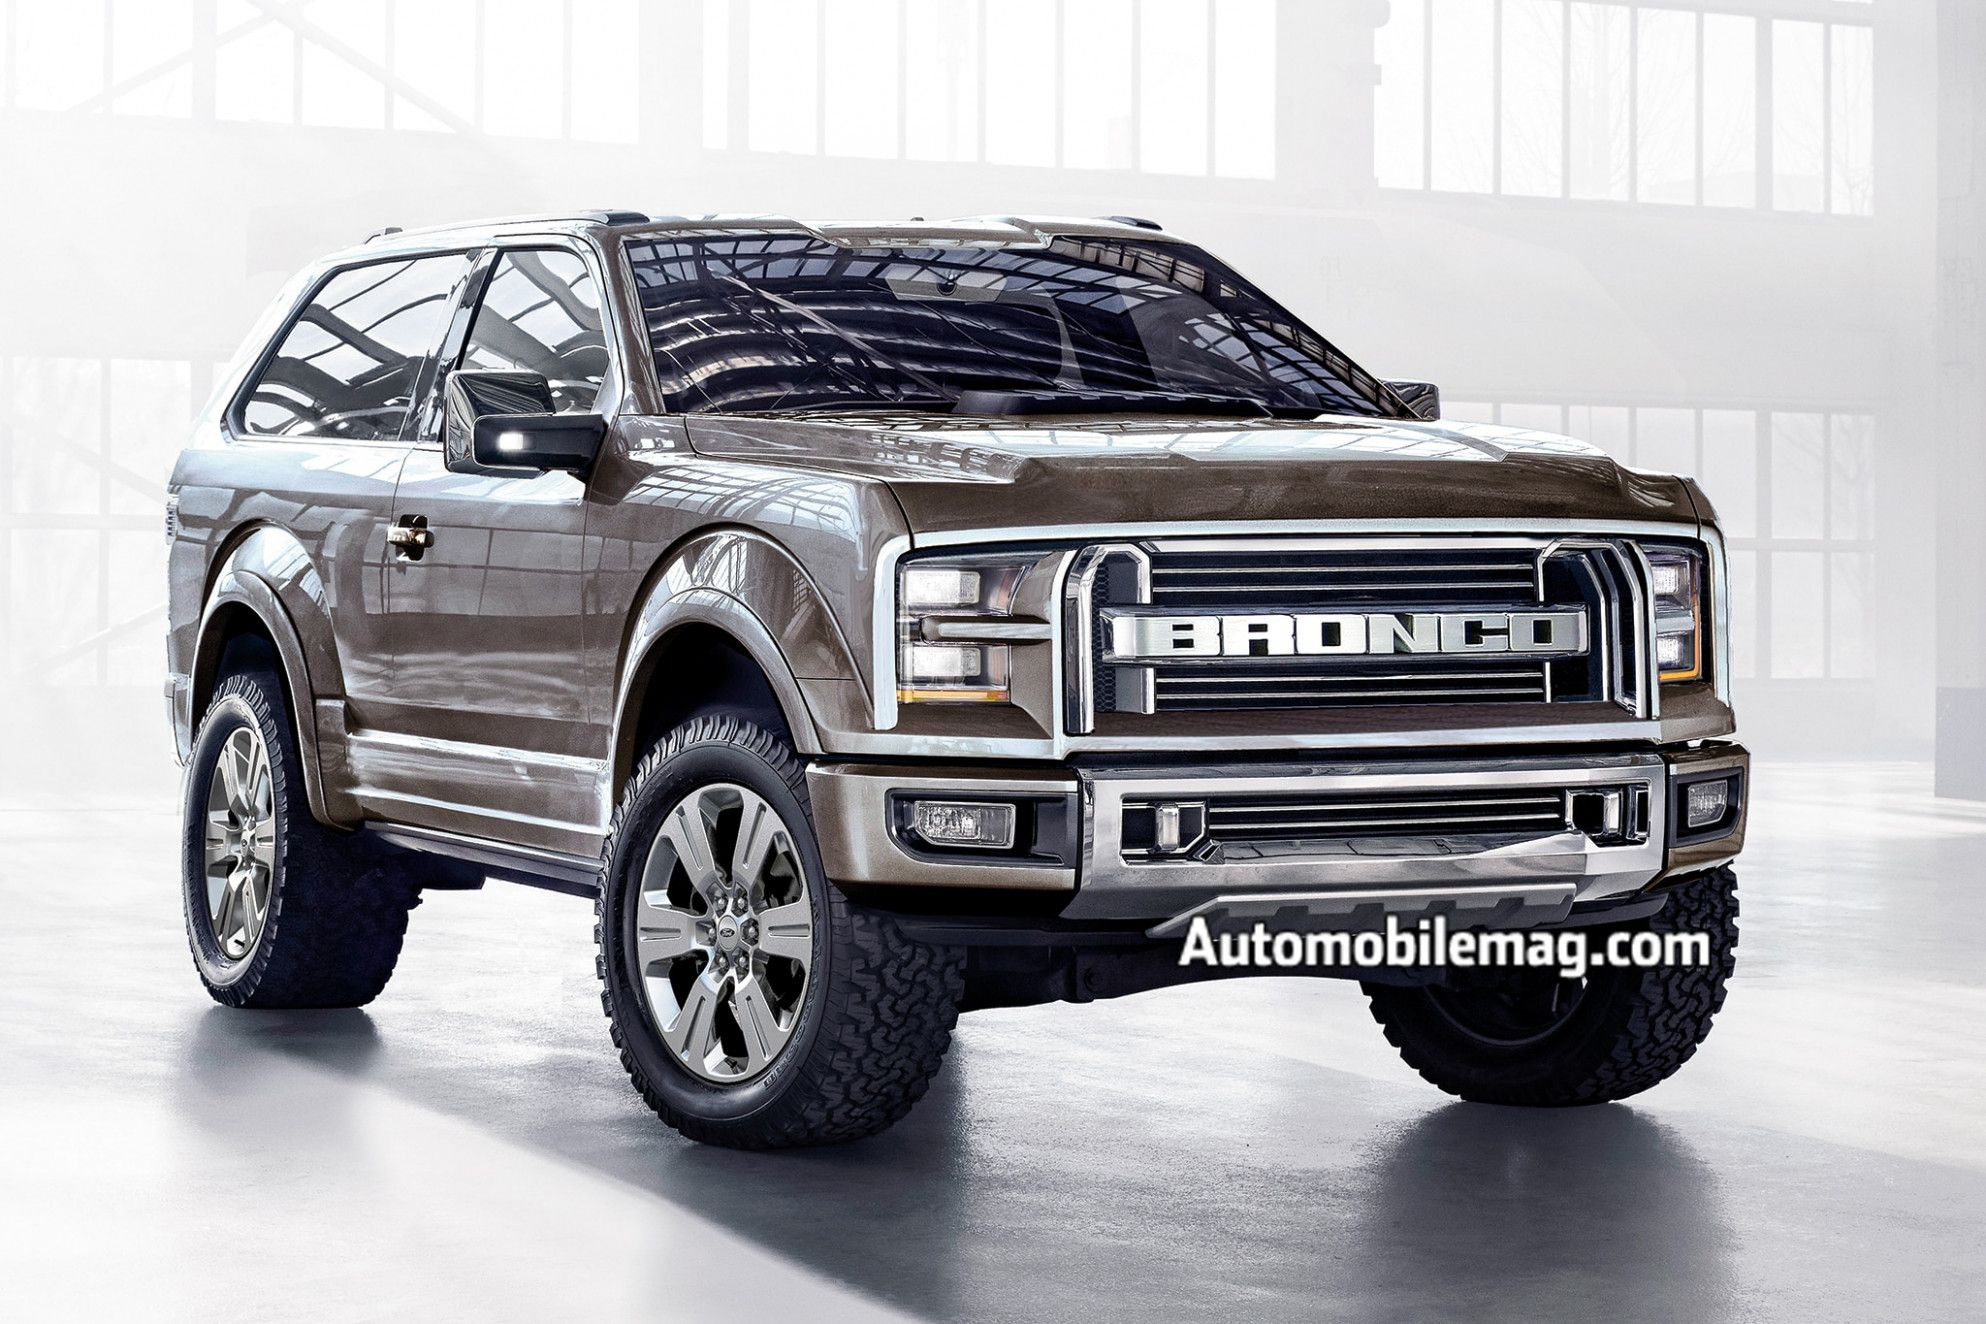 Price Of 2020 Ford Bronco Ratings In 2020 Ford Bronco Ford